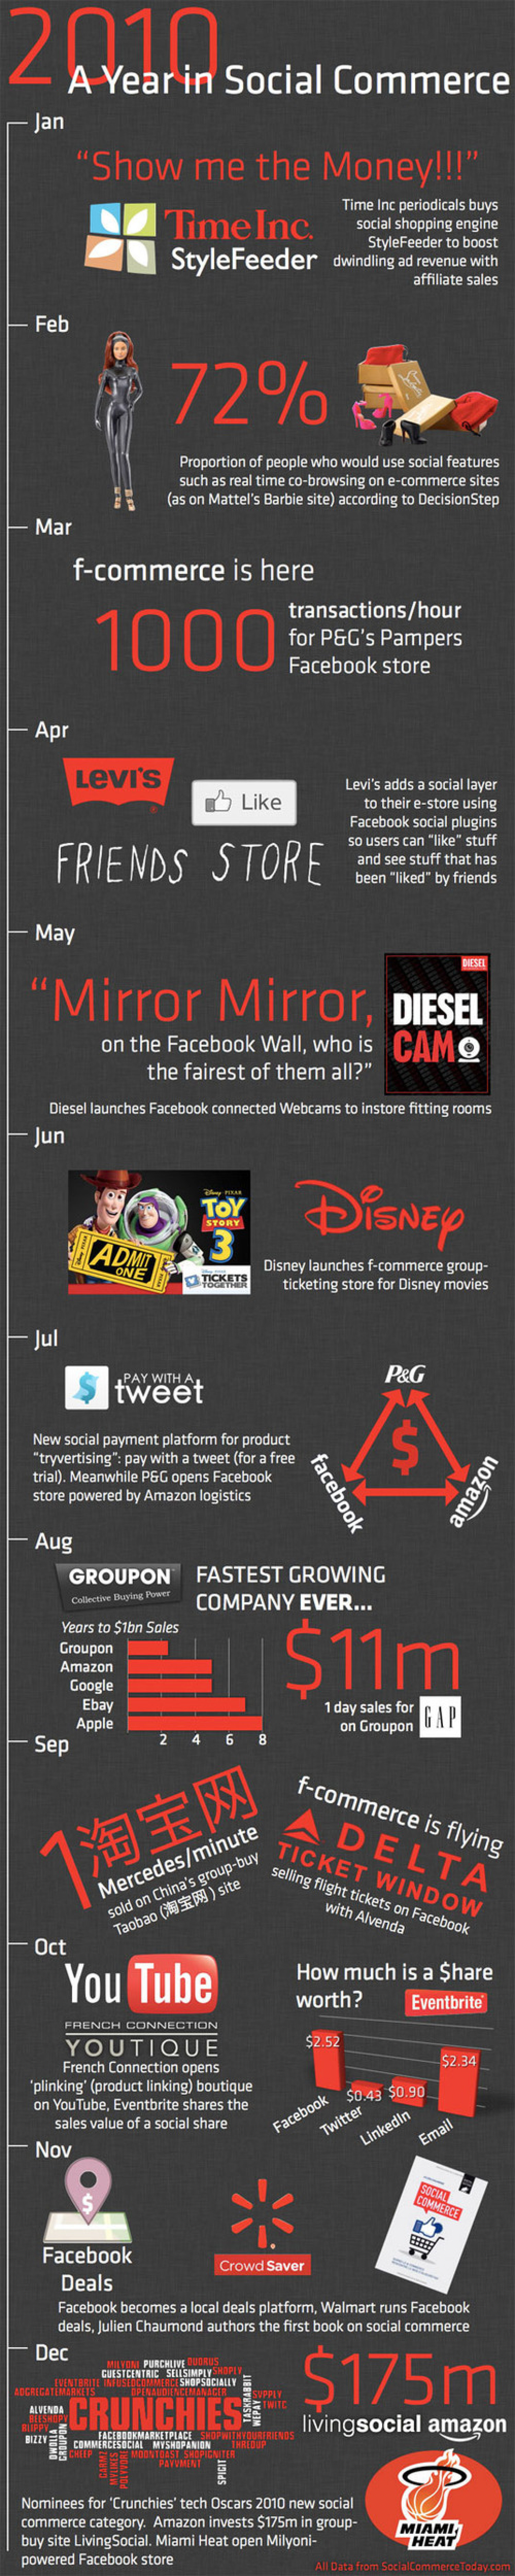 A Year in Social Commerce  Infographic